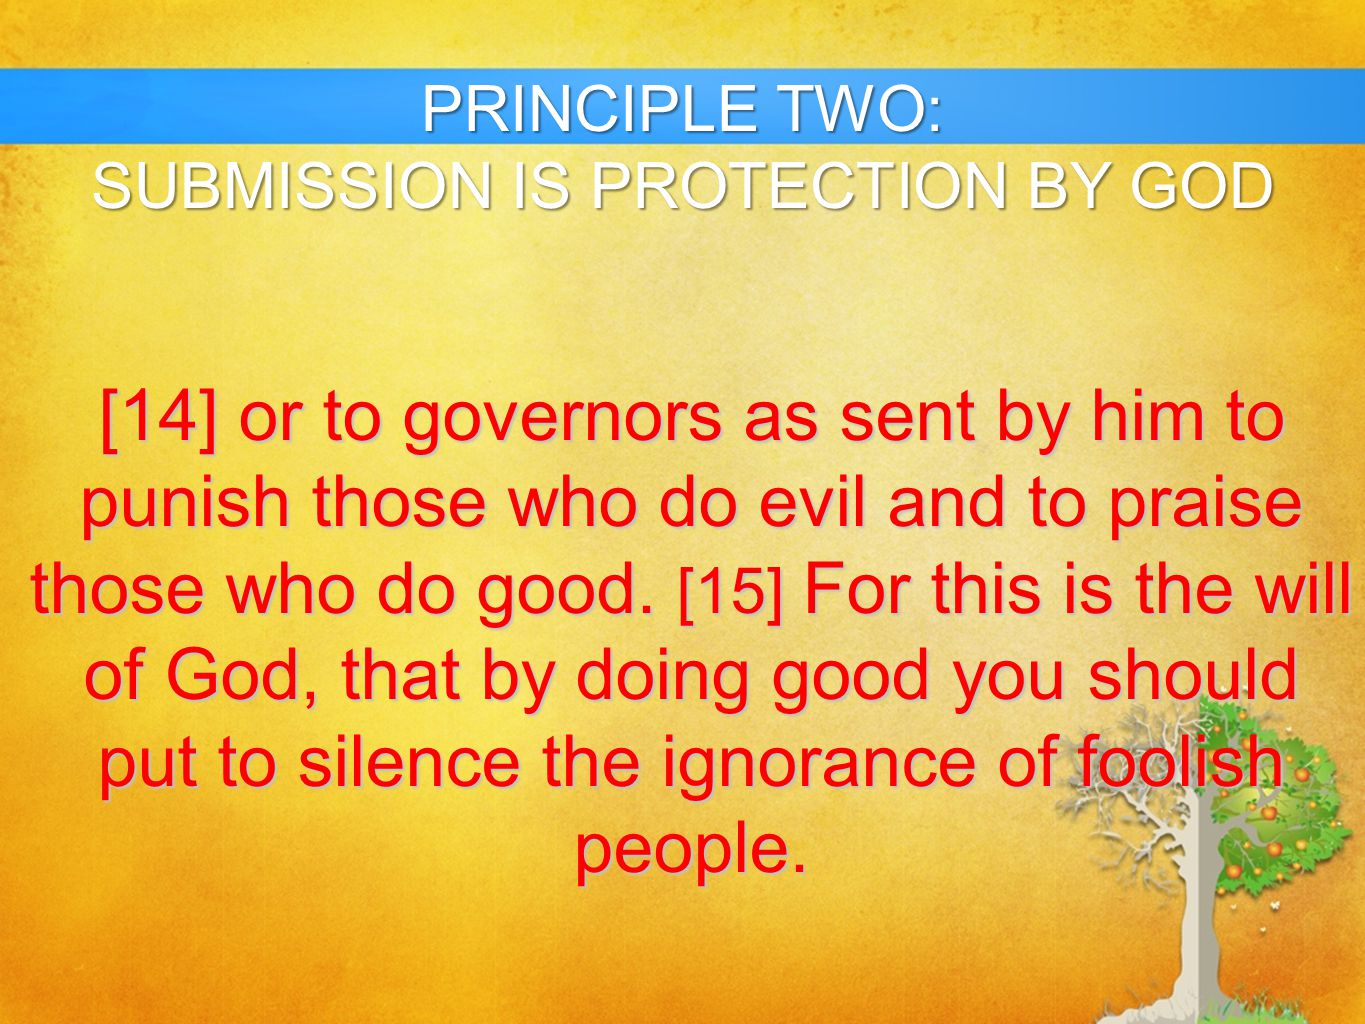 SUBMISSION IS PROTECTION BY GOD